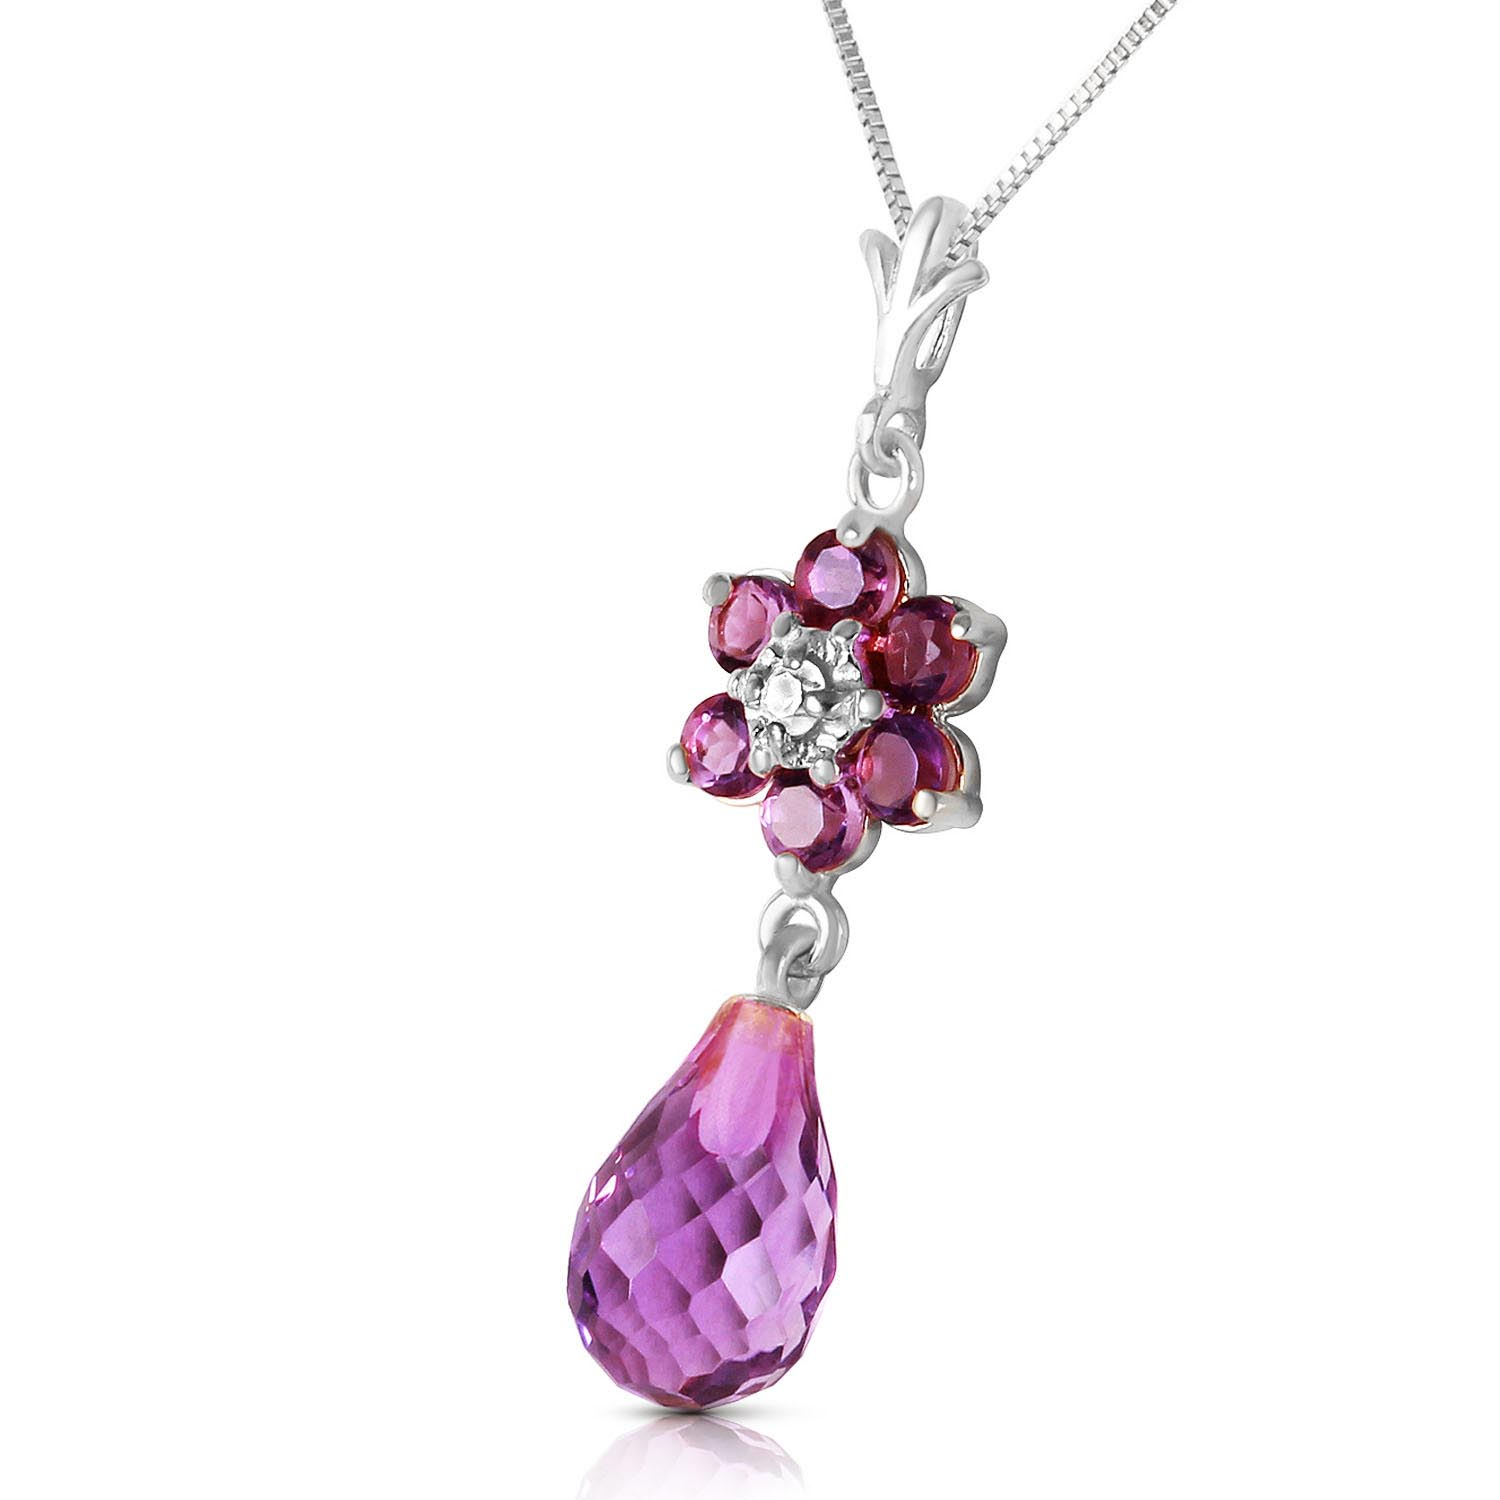 Amethyst and Diamond Flower Pendant Necklace 2.75ctw in 9ct White Gold